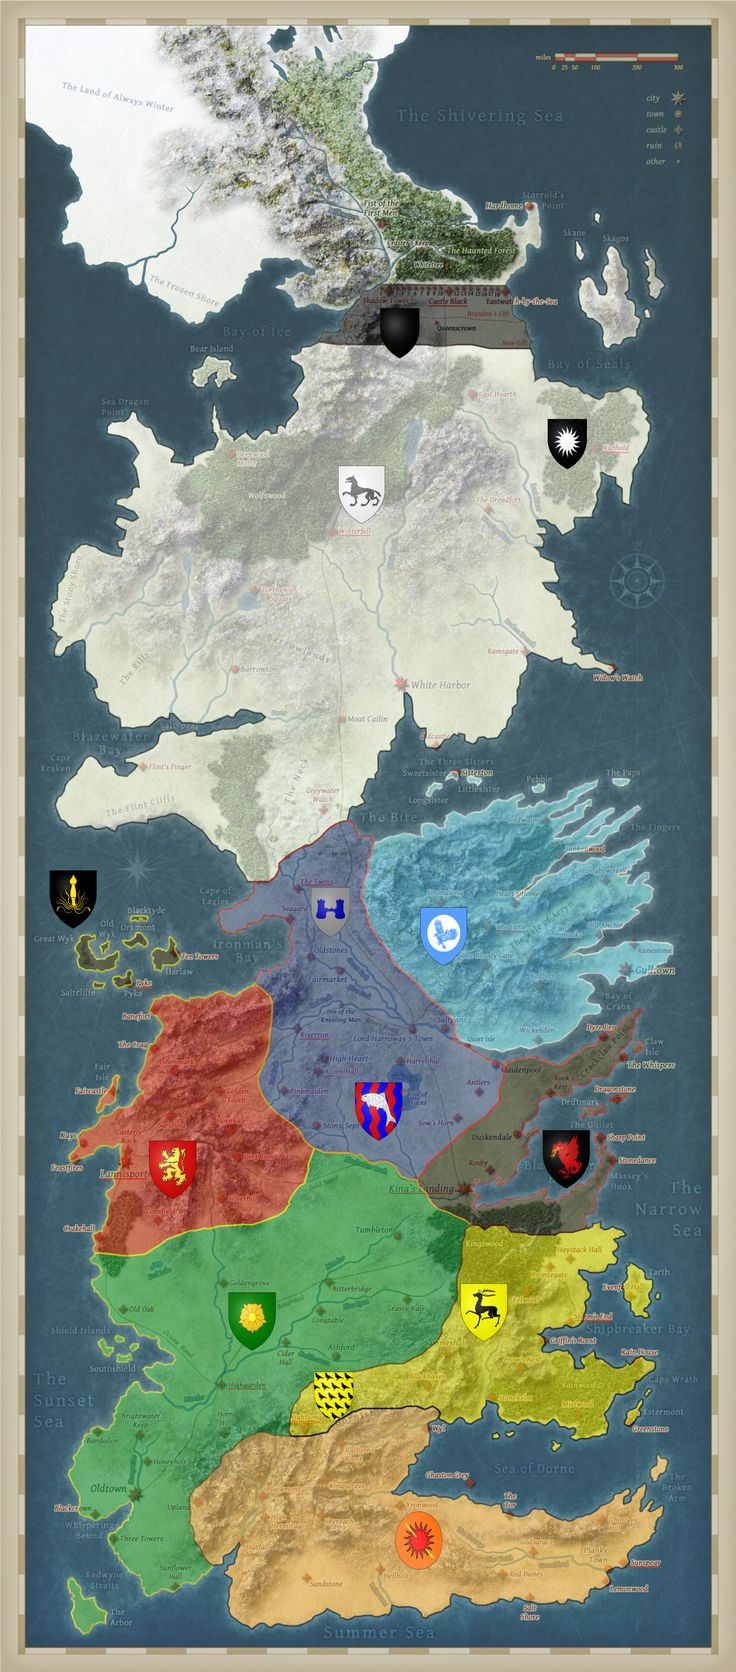 237 best images about westeros on pinterest - Westeros map high resolution ...